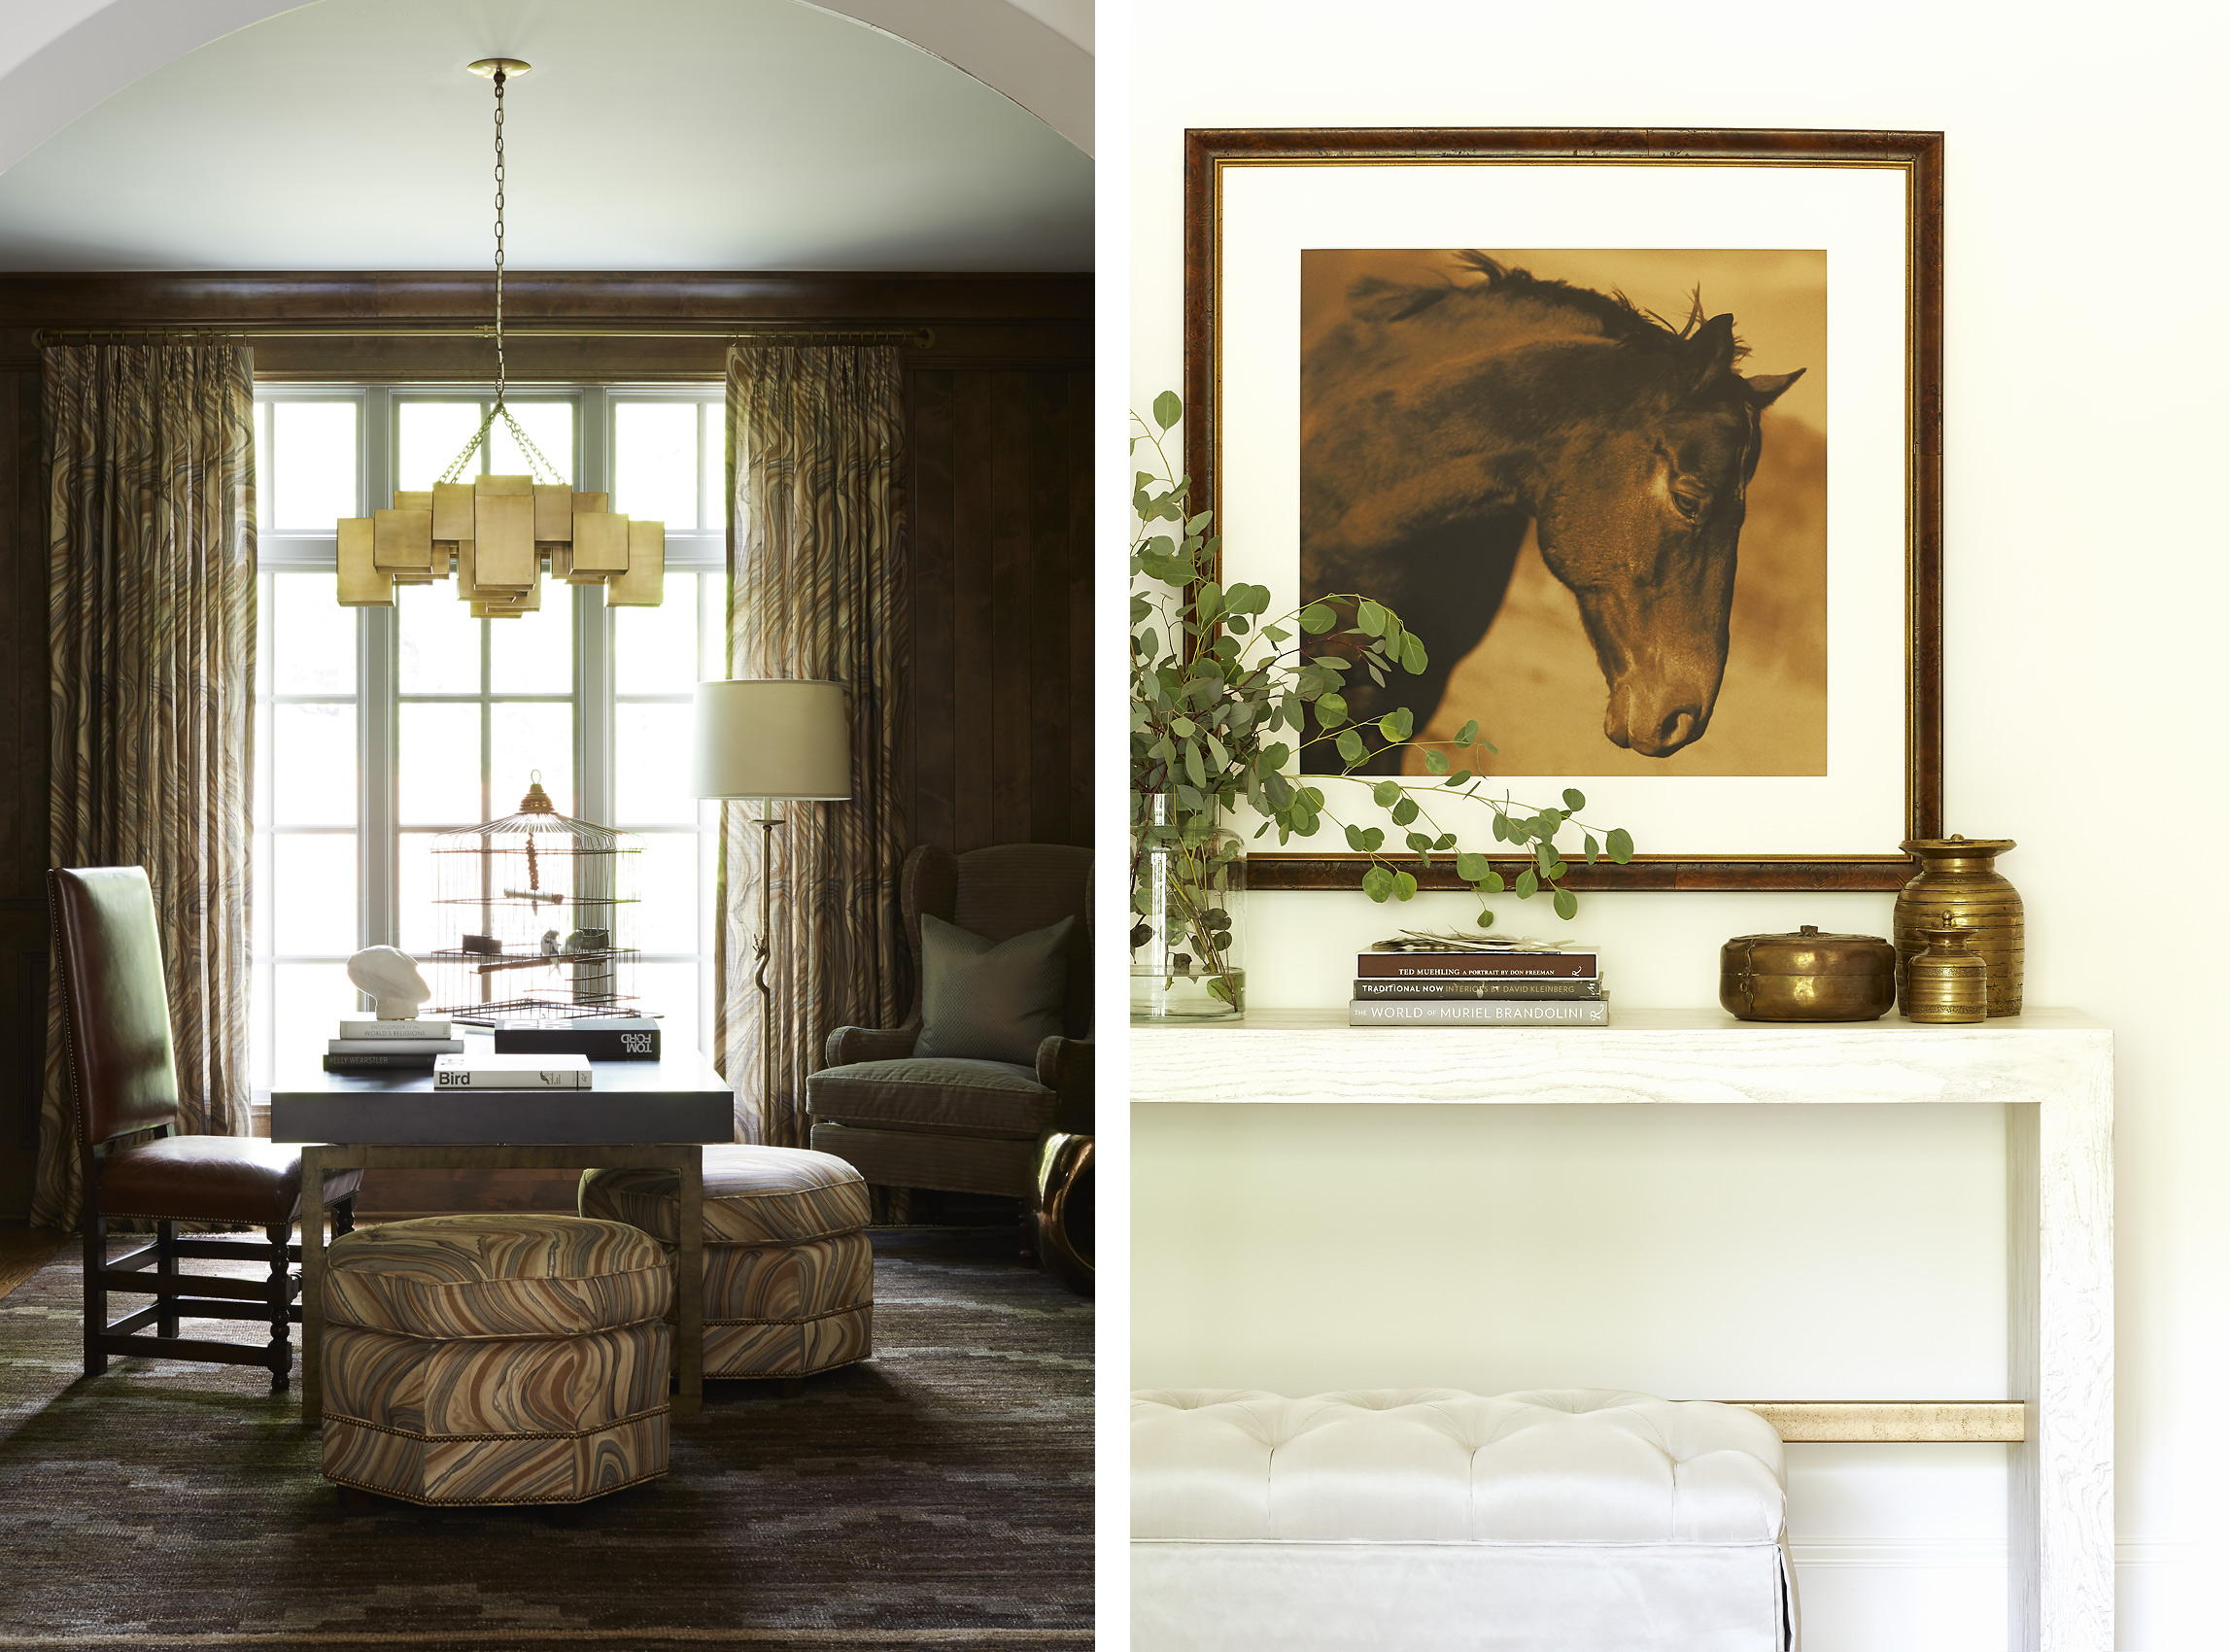 Shayelyn Woodbery Interiors dark library and horse with console, Mali Azima photography.